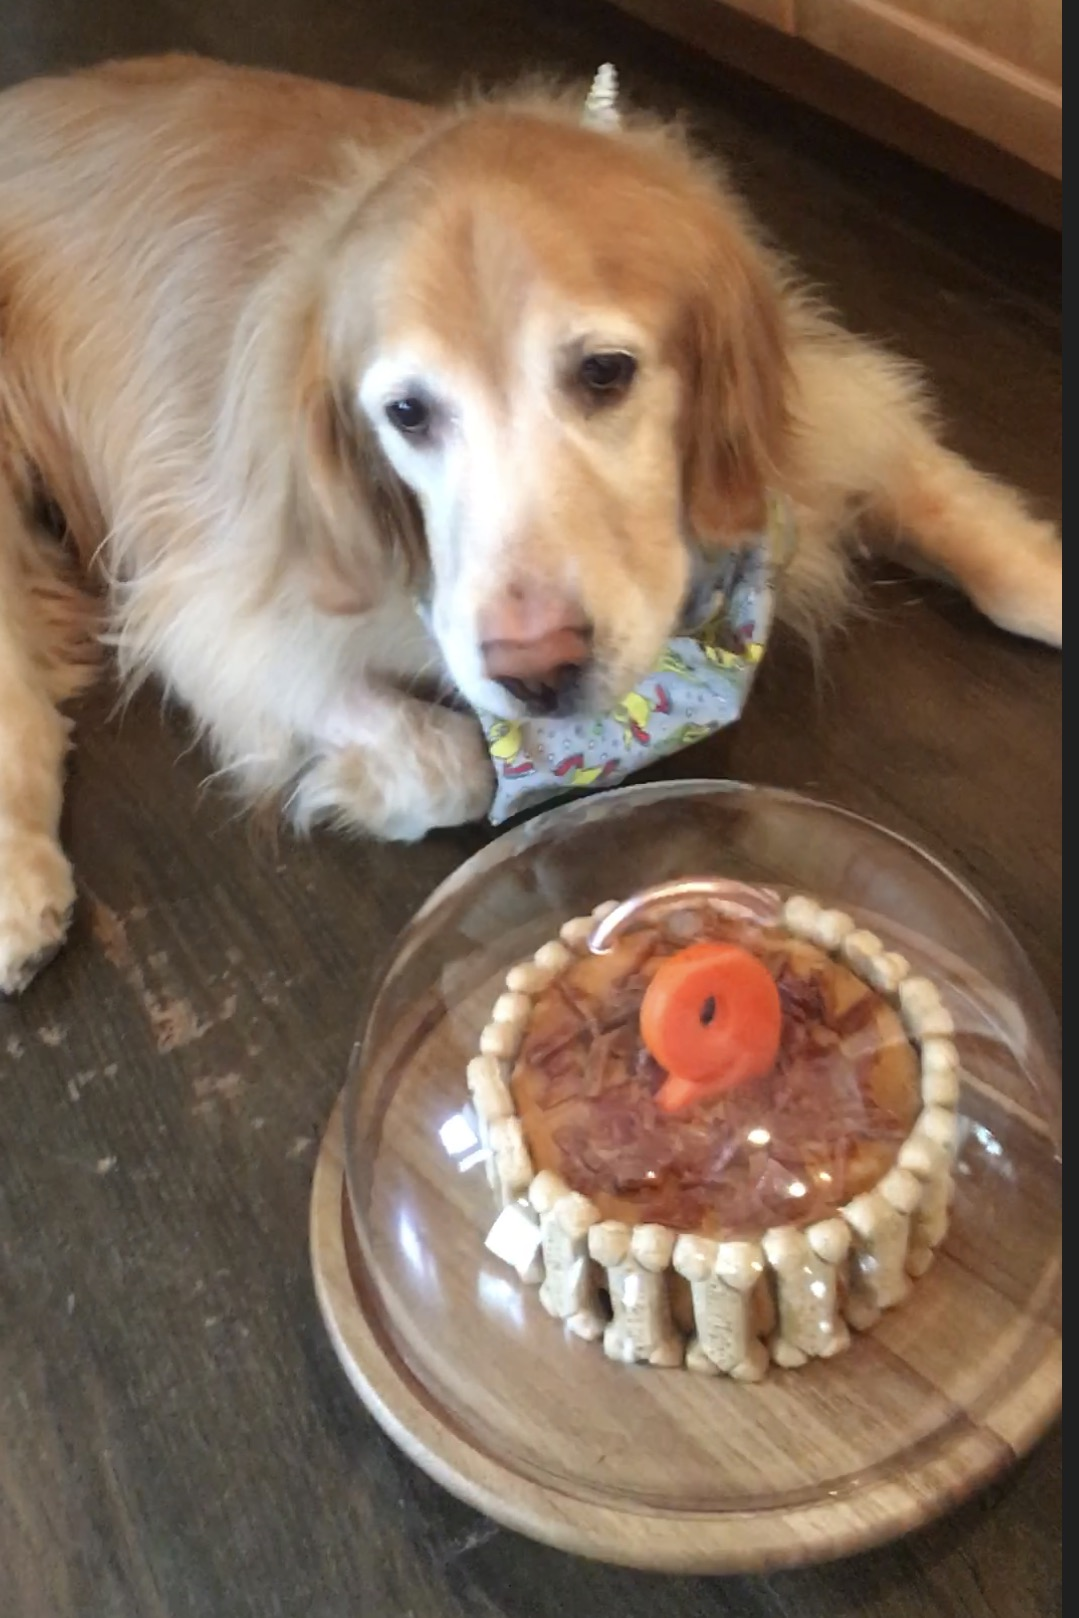 cubbie and the cake.jpg